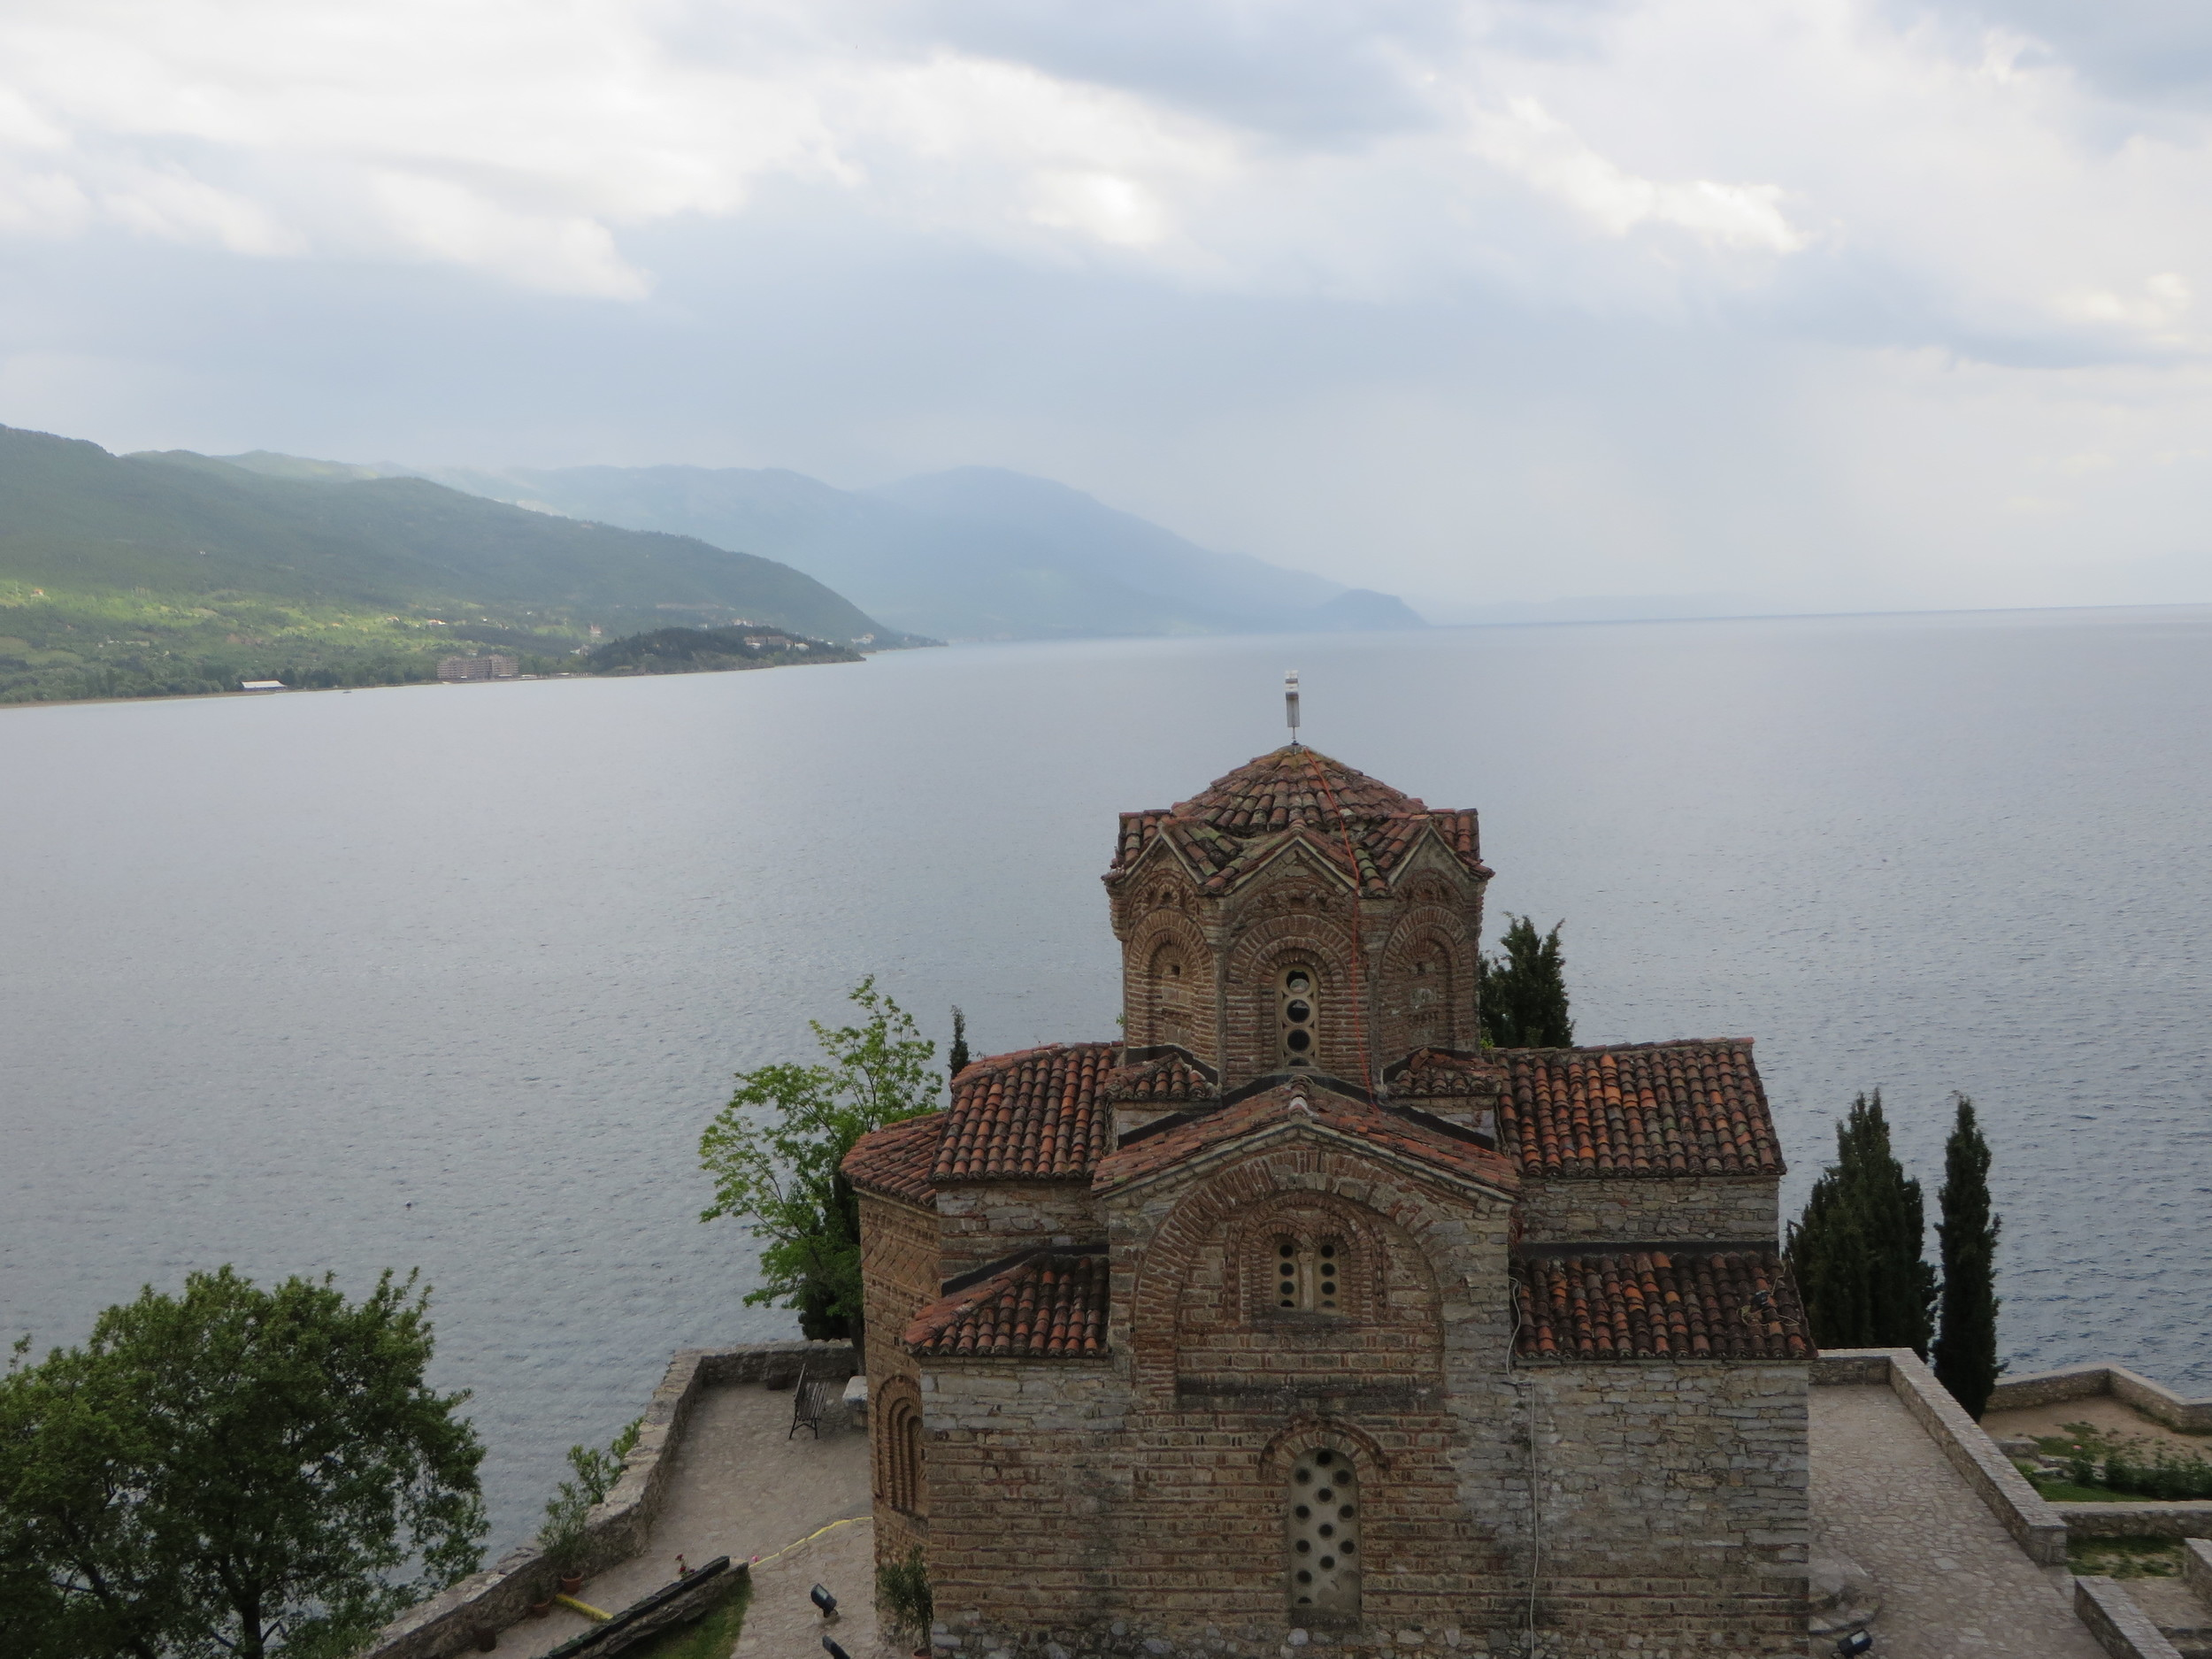 Lake Ohrid,Macedonia - straddling the mountainous border between southeastern Macedonia and Albania is Lake Ohrid. This is one of the oldest and deepest lakes in Europe. It possesses a special magical feeling.